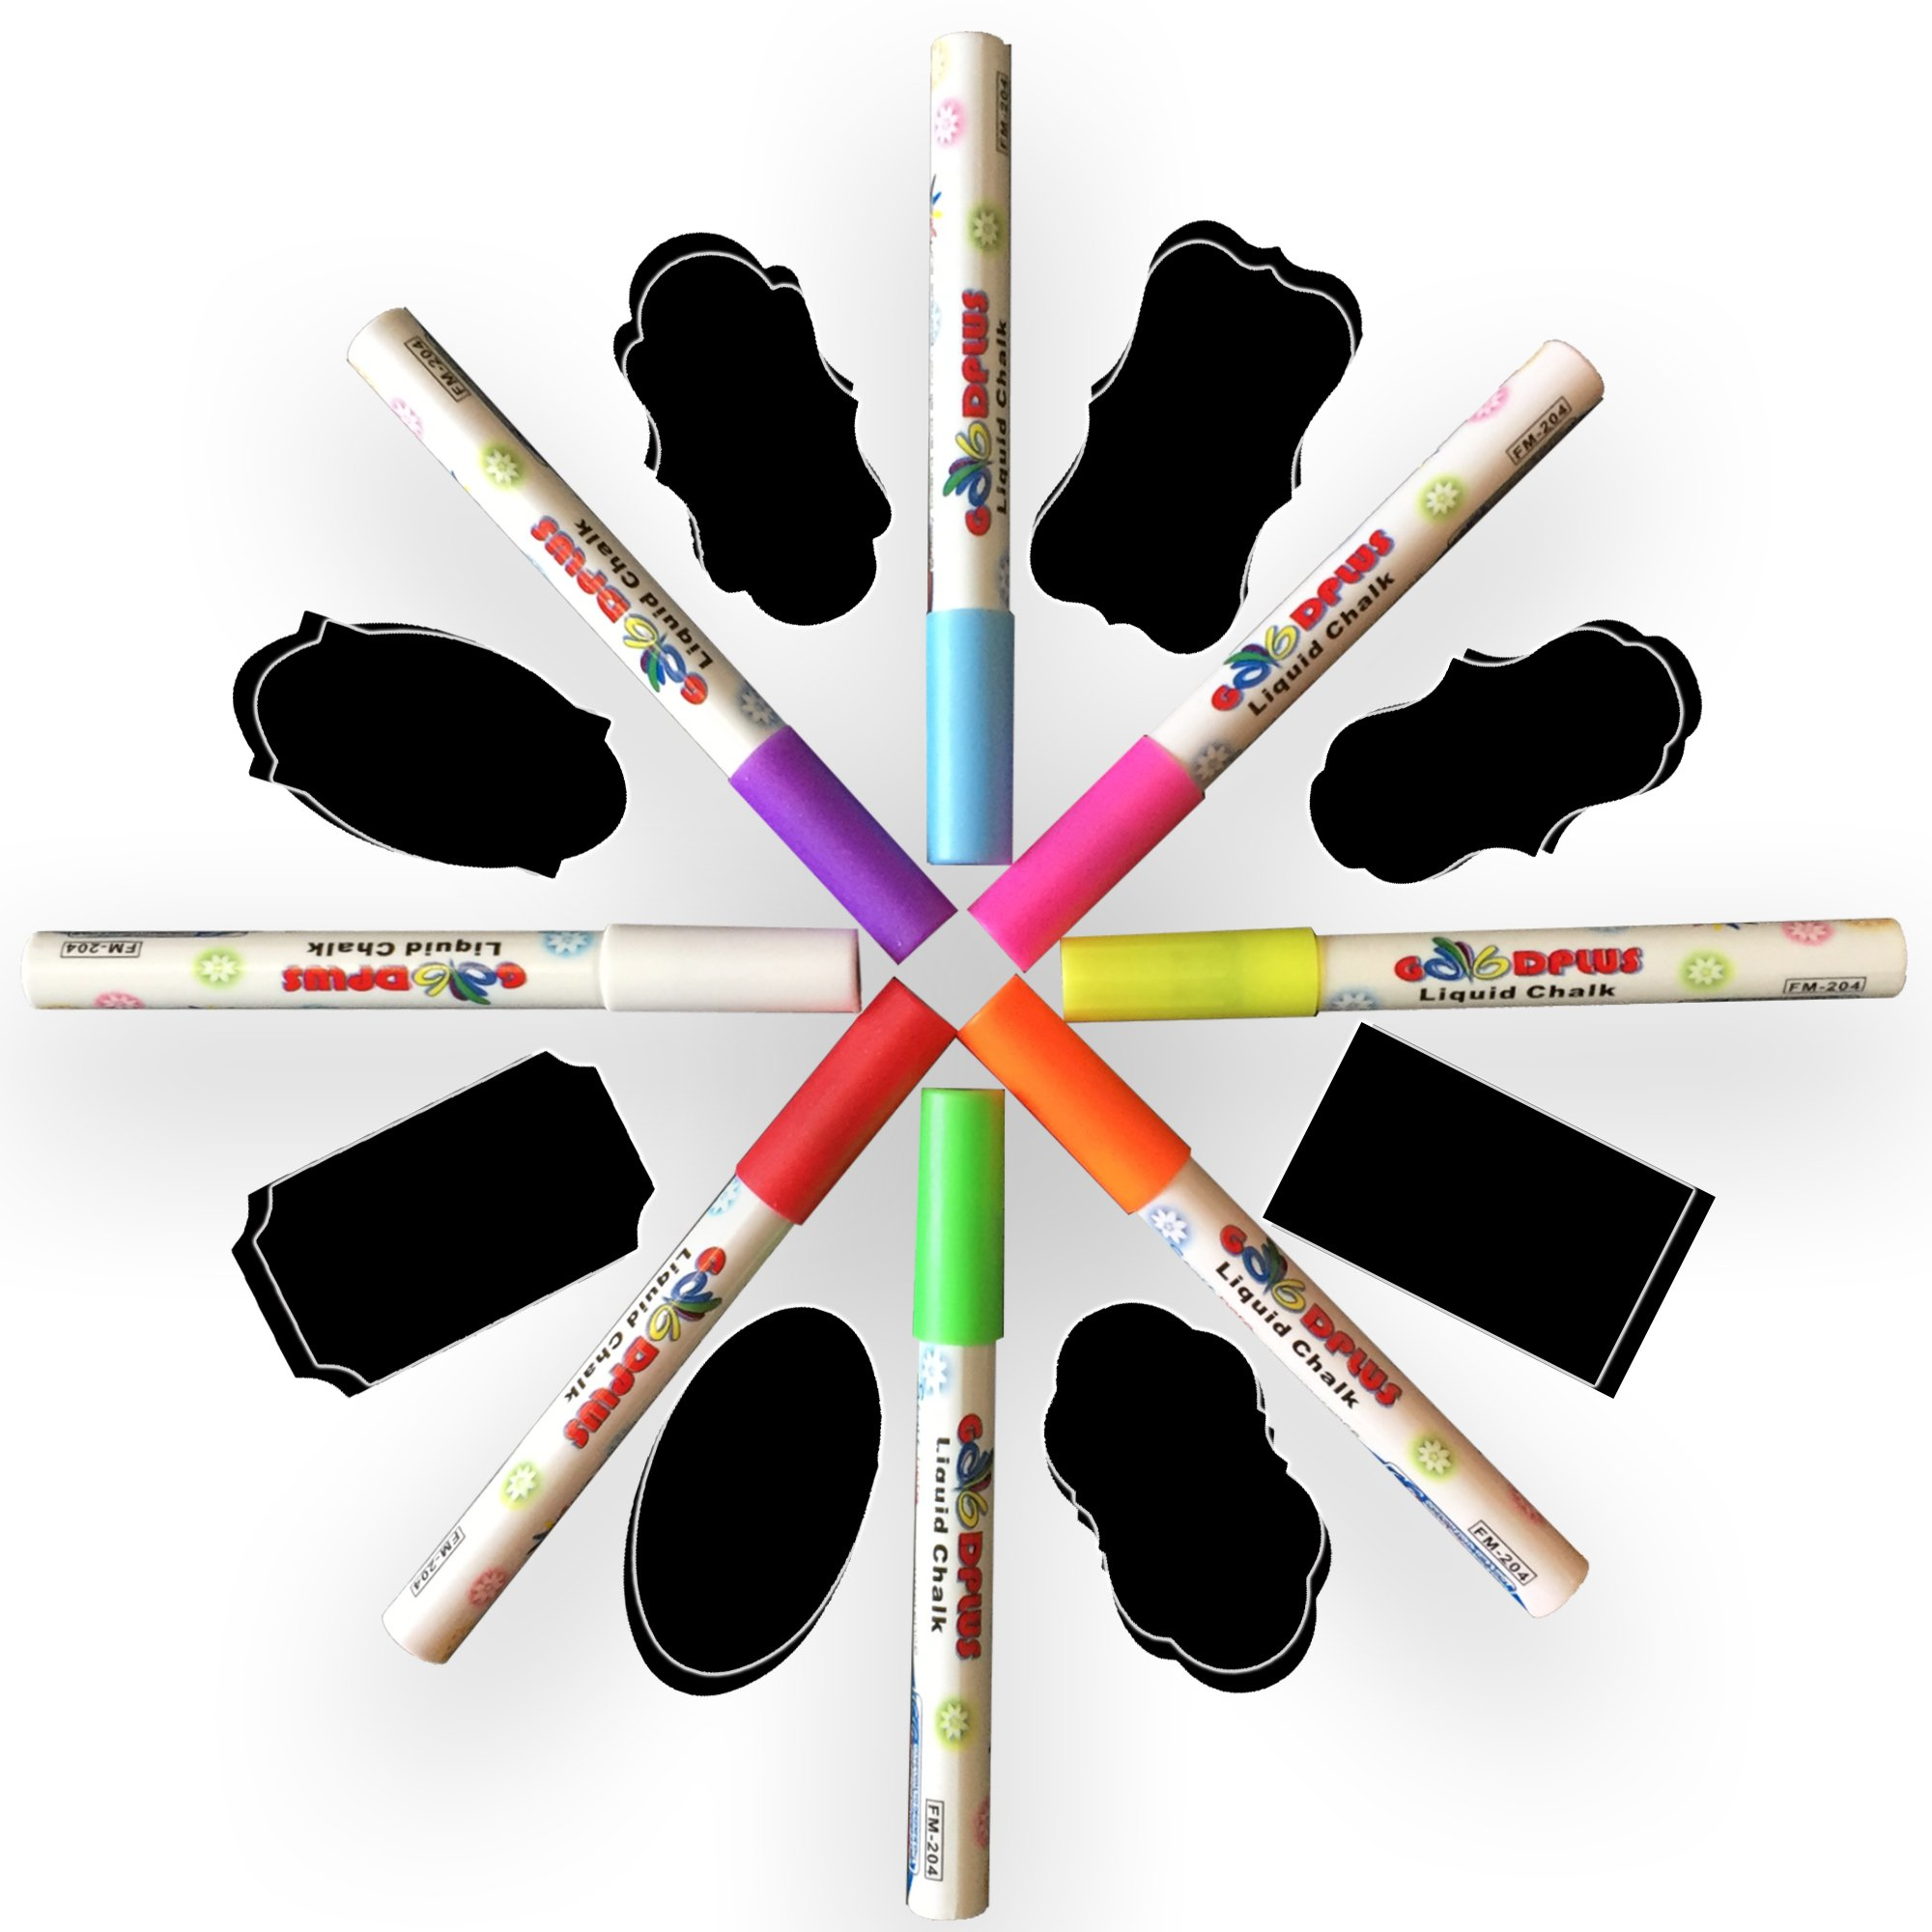 Liquid Chalk Markers to Draw on Glass Windows, Glossy Board and all non-porous surfaces - Fine 3mm - 8 Pack With 16 Chalkboard Labels Neon Colors Pink, Orange, Blue, Green, White, Purple, Red, Yellow